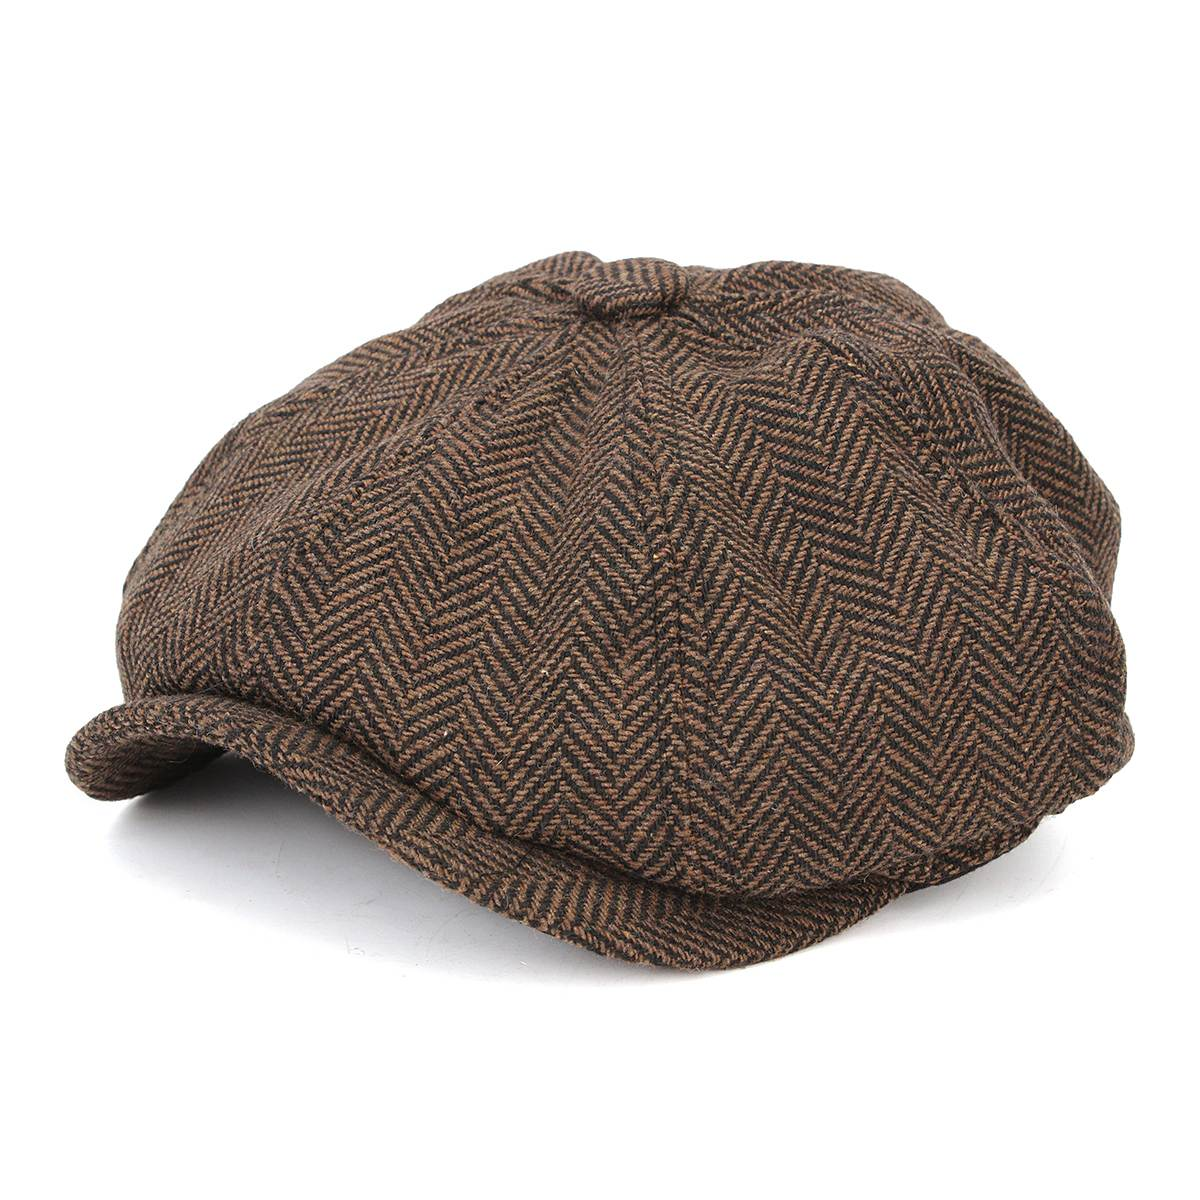 bef8f061a4f Detail Feedback Questions about Men Octagonal Berets Herringbone Gatsby Tweed  Cap Newsboy Male Beret Wool Driving Cabbie Hat Winter Women Flat Peaked  Beret ...